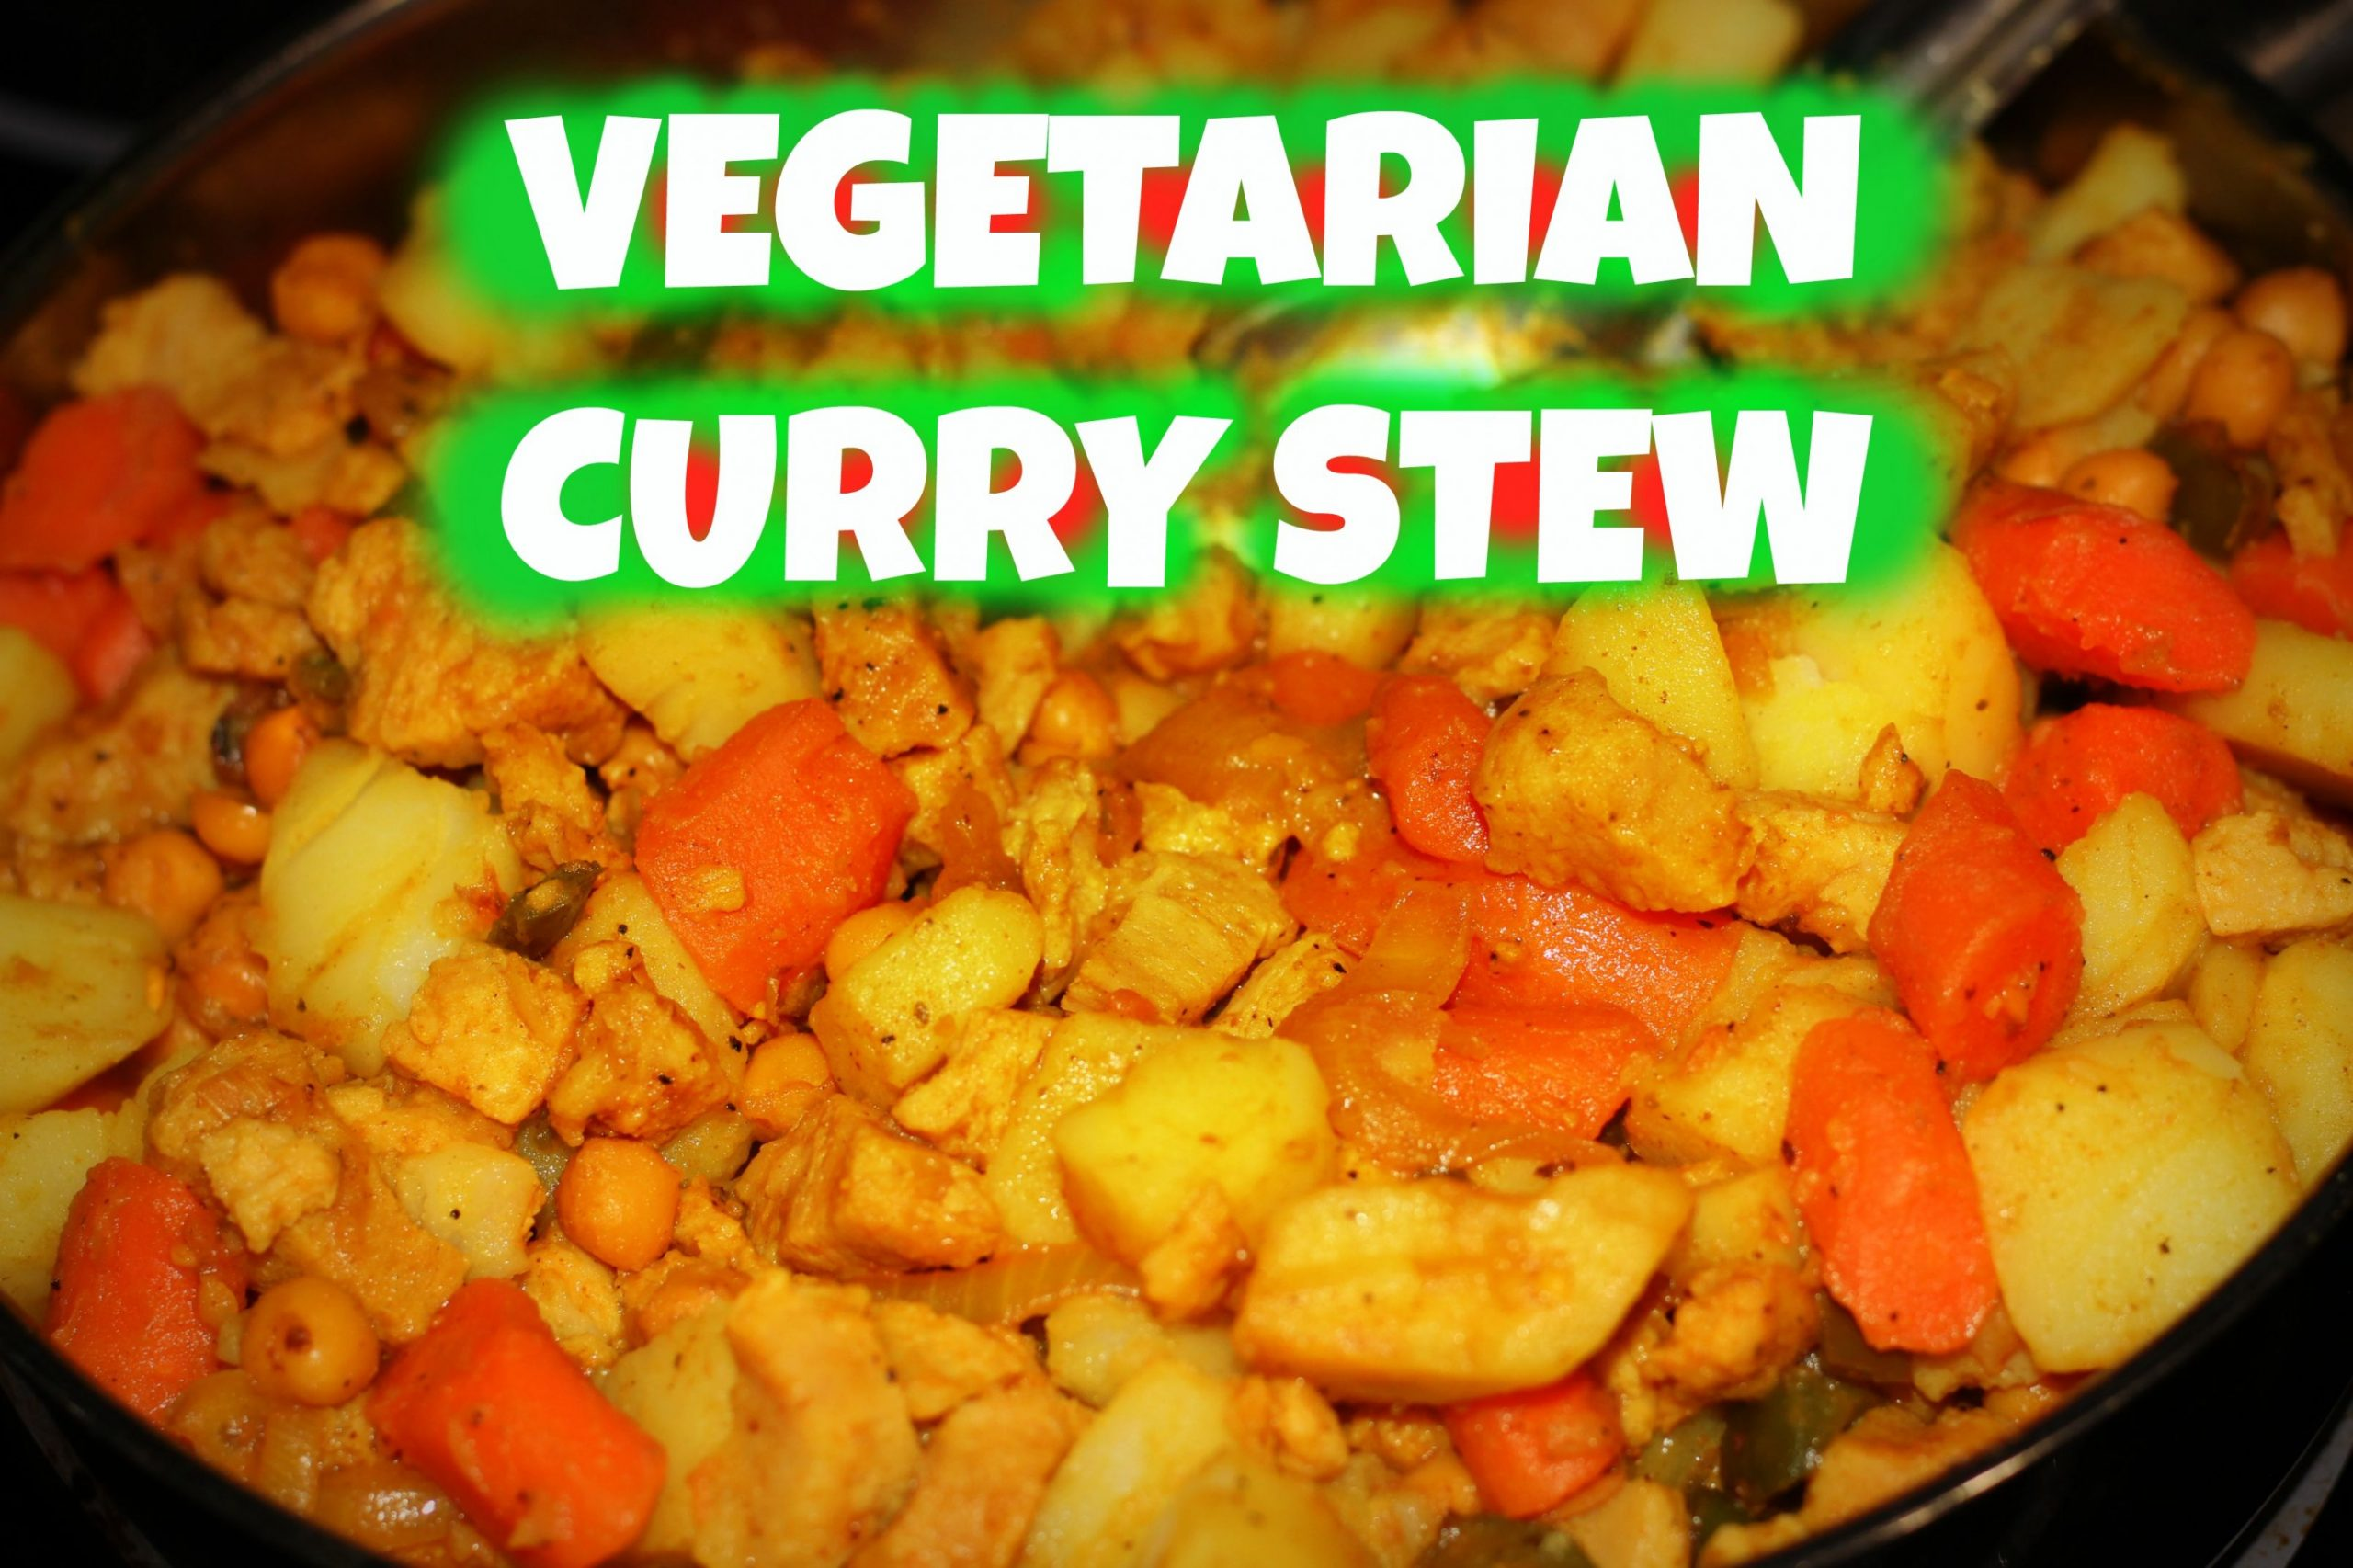 Vegetarian Curry Stew | The Jamaican Mother - Vegetarian Recipes Jamaican Style